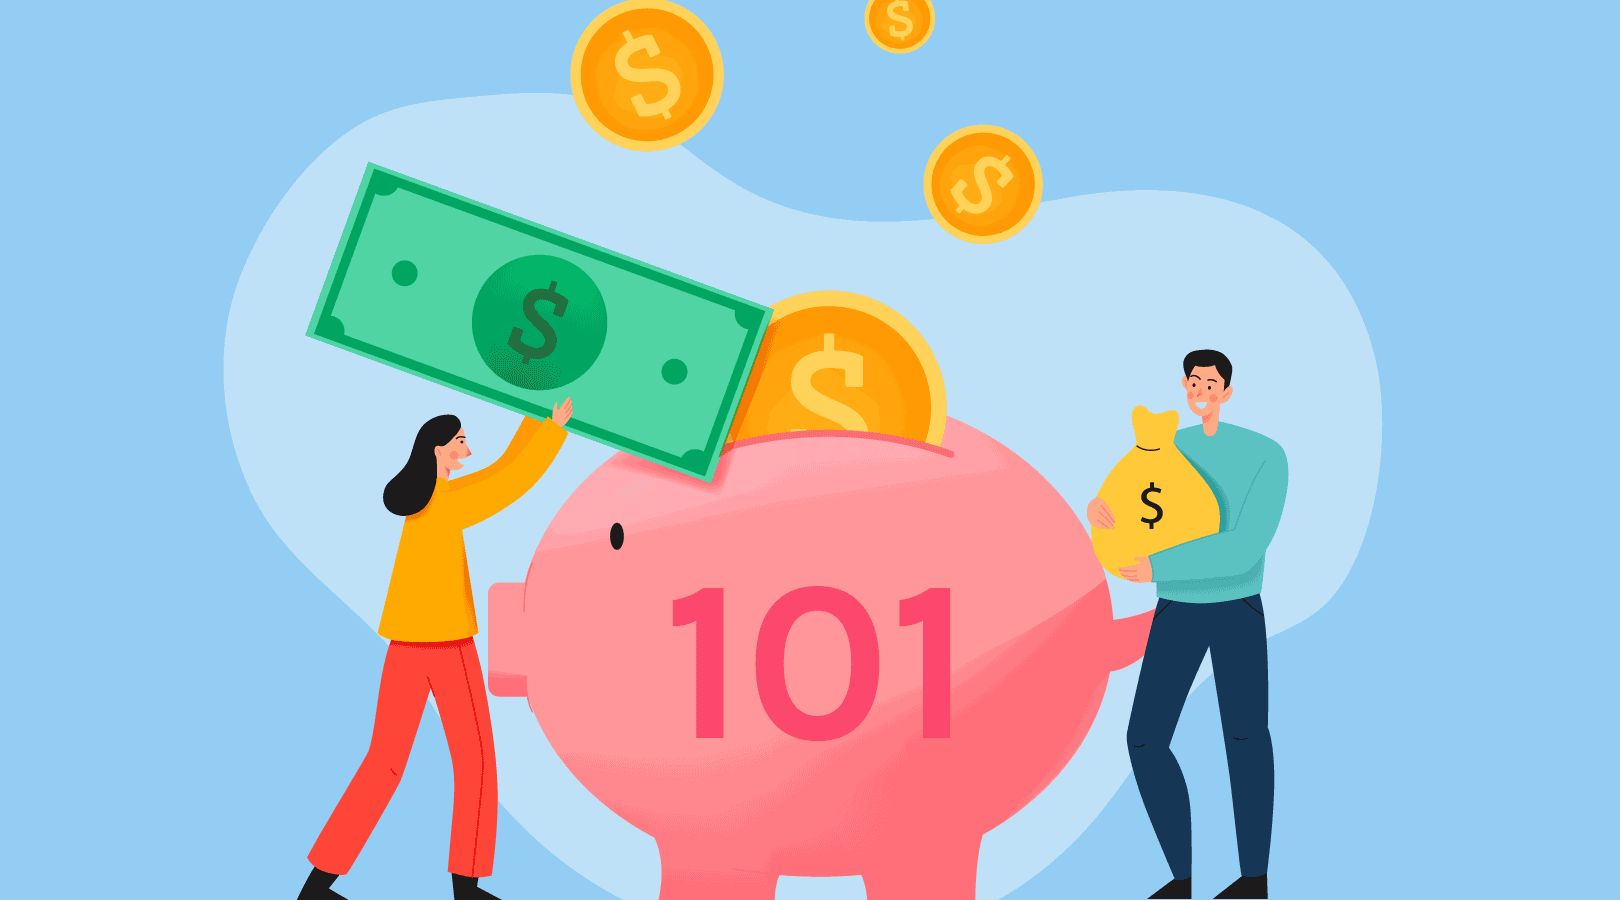 Crowdfunding 101: The Ultimate Guide to Creating Successful Campaigns